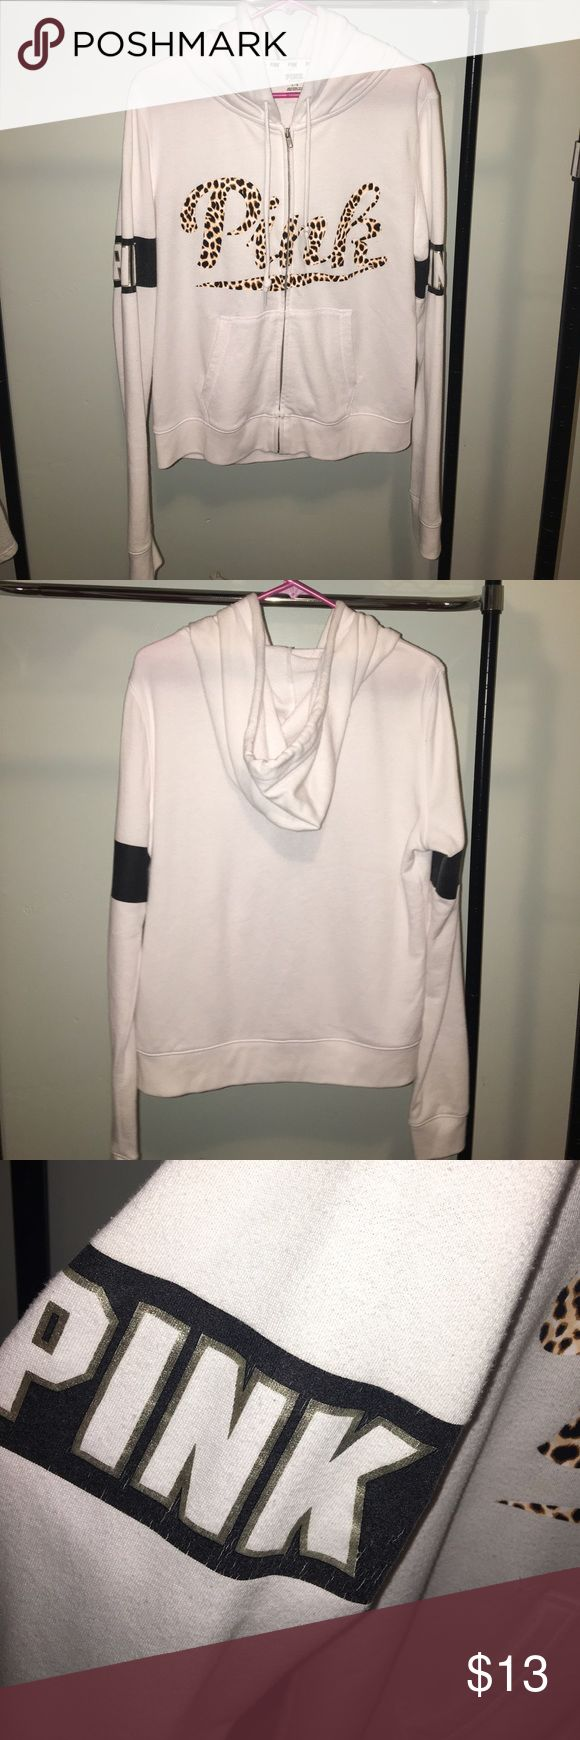 """Leopard """"PINK"""" white zip up hoodie This item did not previously sell and is still available in my closet. Loose, comfy, clean, no stains. Minor fading on black arm bands (see pic) Smoke free, pet free home. Last of my winter sweatshirts. PINK Victoria's Secret Sweaters"""